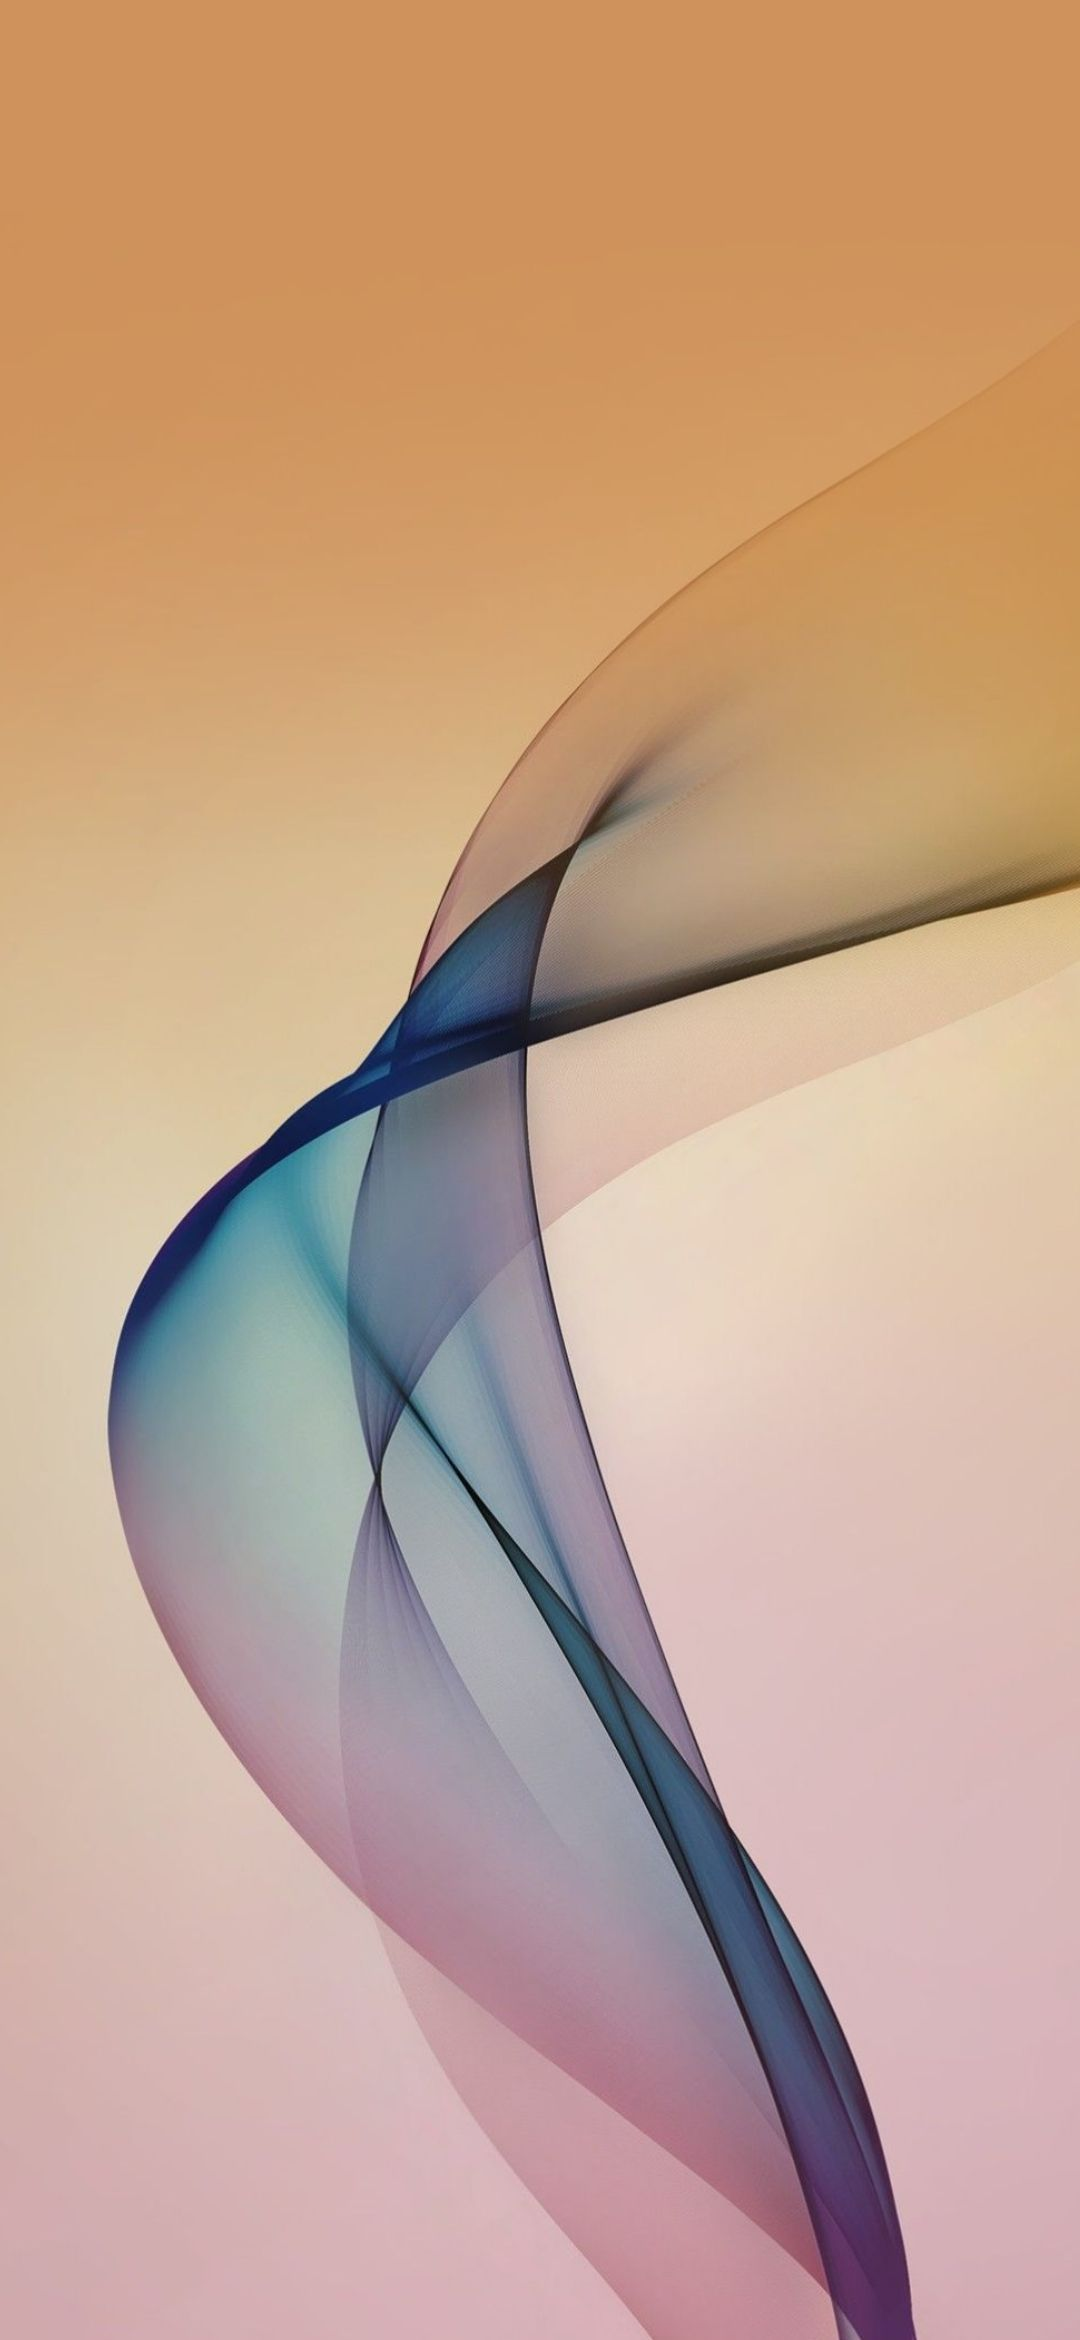 Pin By Ashwin Sakhare On Abstract Huawei Wallpapers Samsung Wallpaper Phone Wallpaper Images